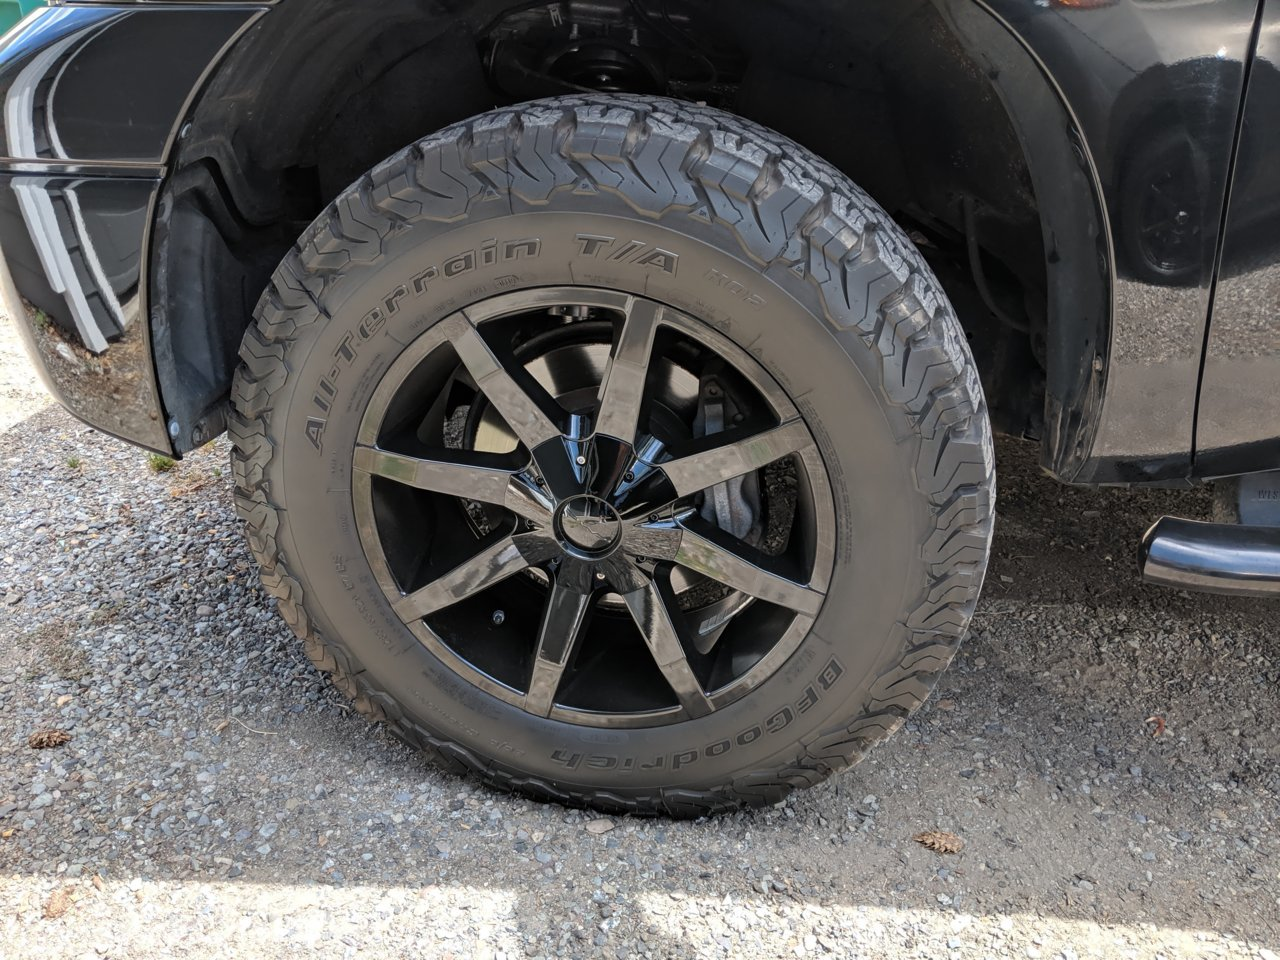 photo 2 Toyota Tundra custom wheels KMC  Slides x, ET -38, tire size 285/65 R. x ET